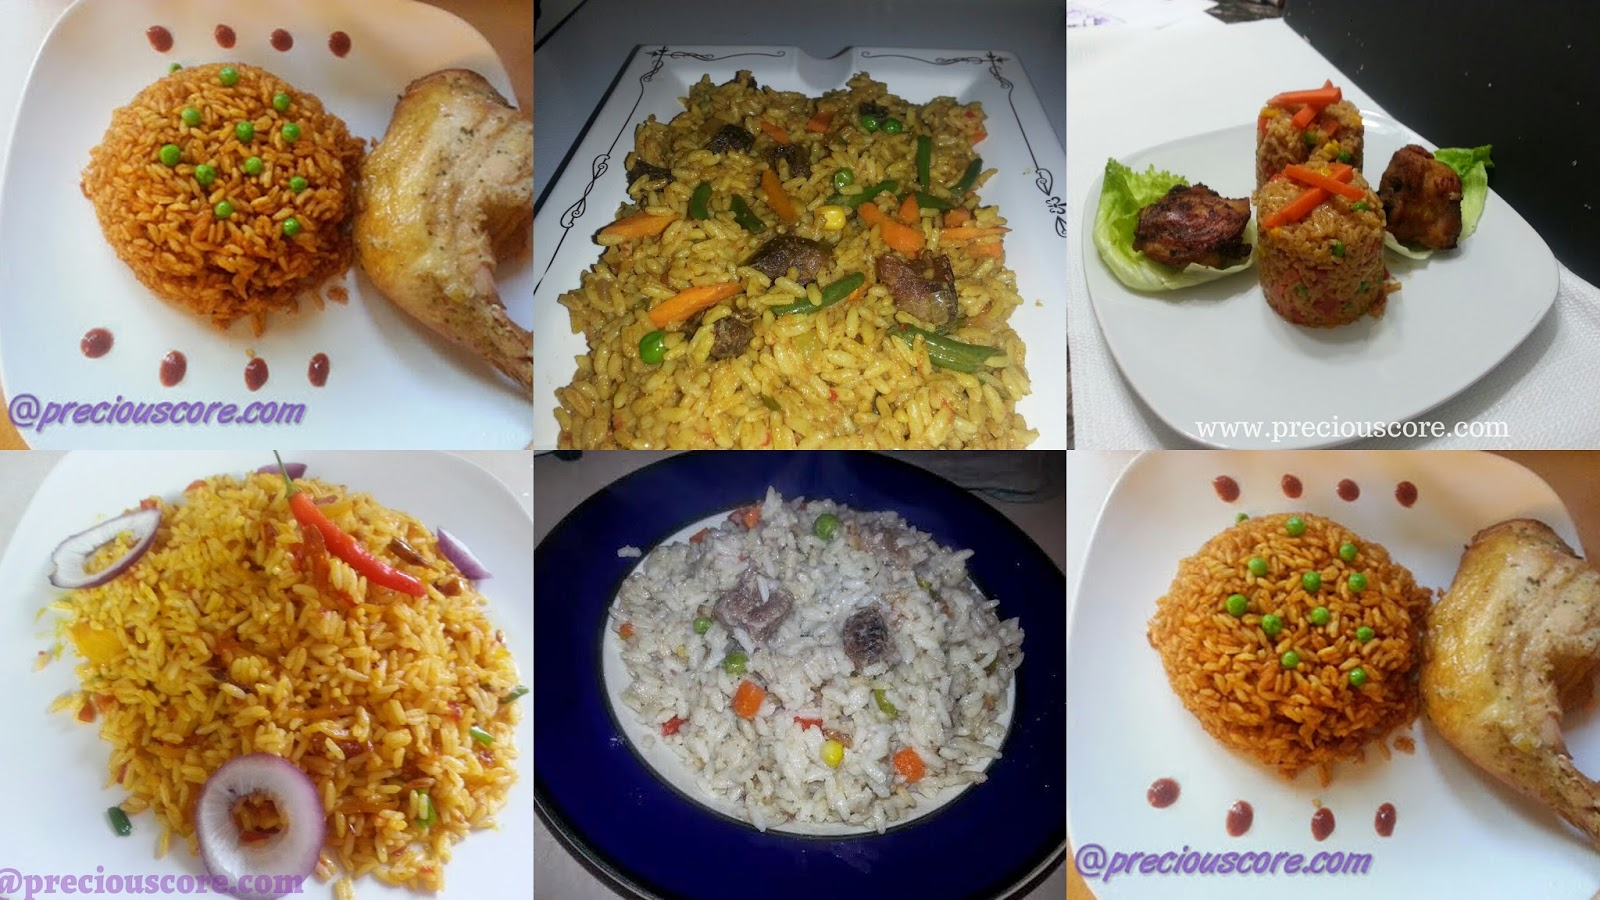 Jollof rice recipes for World Jollof Rice Day